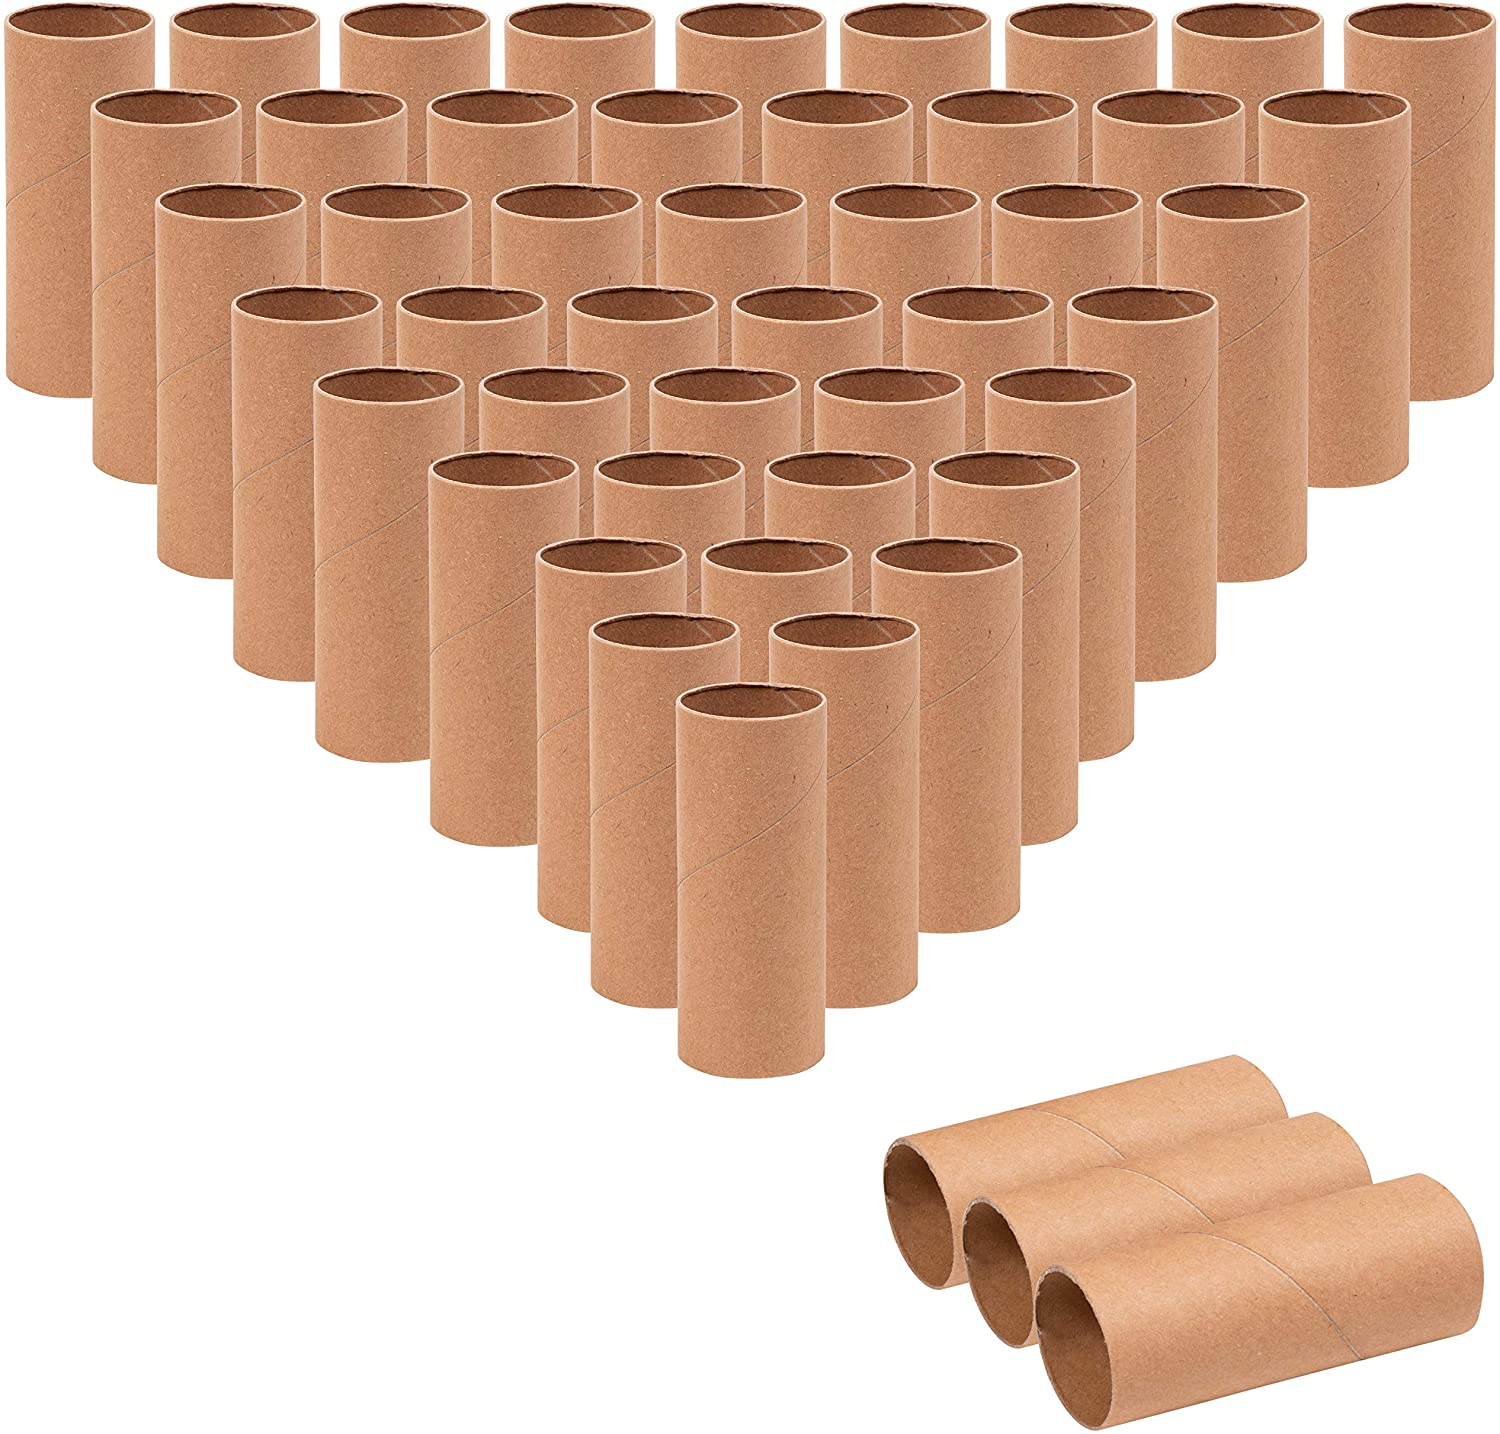 Animals Come with 100 Sheets Colorful Paper and 80 Pack Wiggle Eyes/ SUITUS 40 Pack 1.6X3.9 Inch Cardboard Tubes Bulk Craft Rolls Tubes Thick Paper Roll Tubes for DIY Art Craft Brown